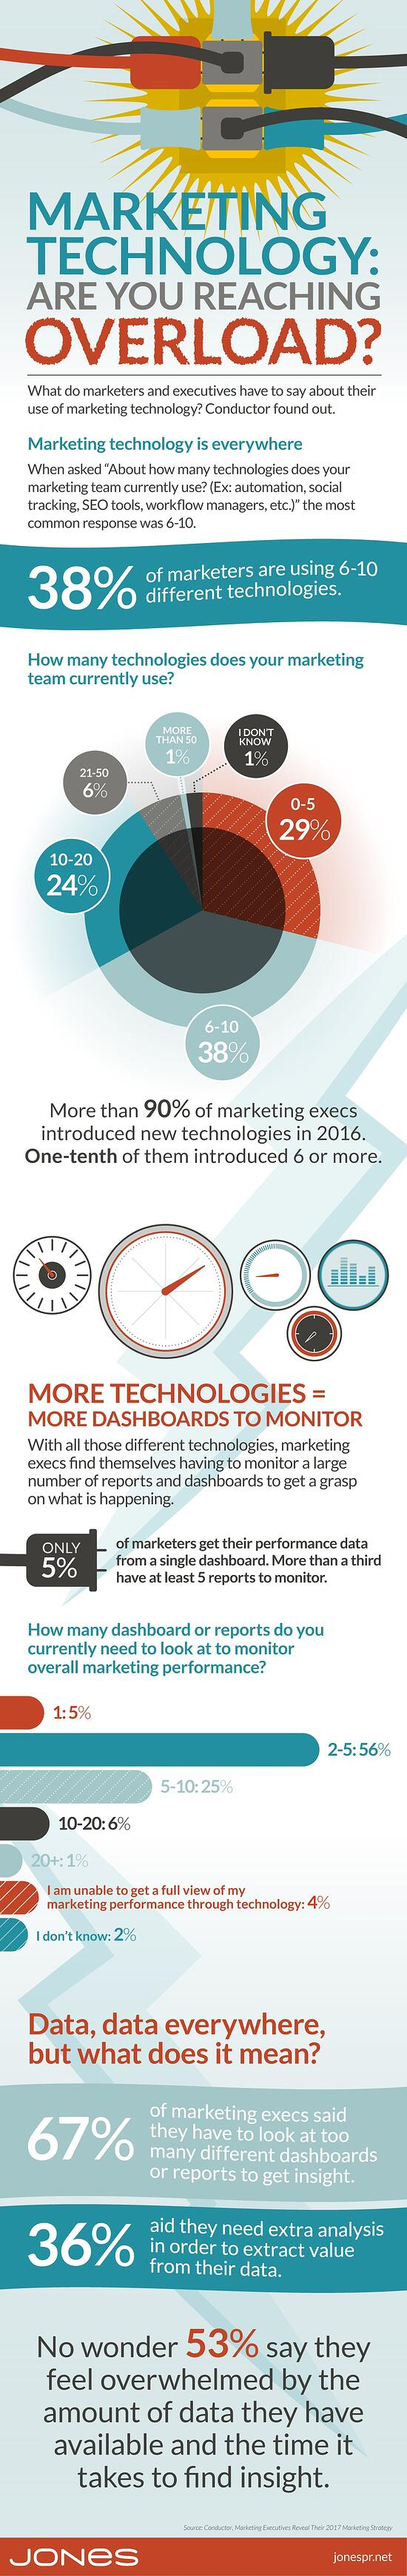 Marketing Technology: Are You Reaching Overload?